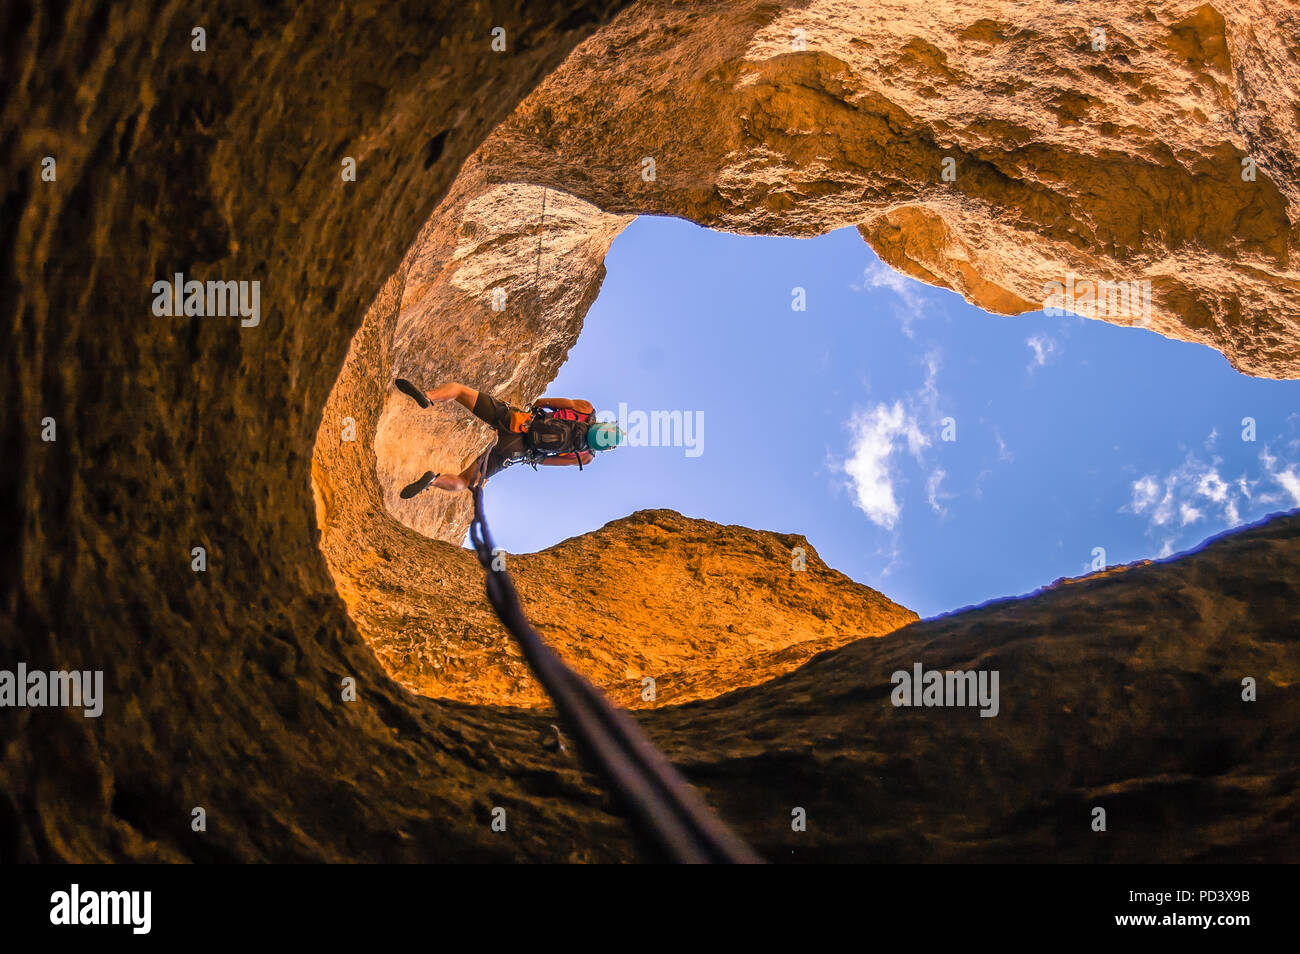 Man abseiling, low angle view, Smith Rock State Park, Terrebonne, Oregon, United States Stock Photo